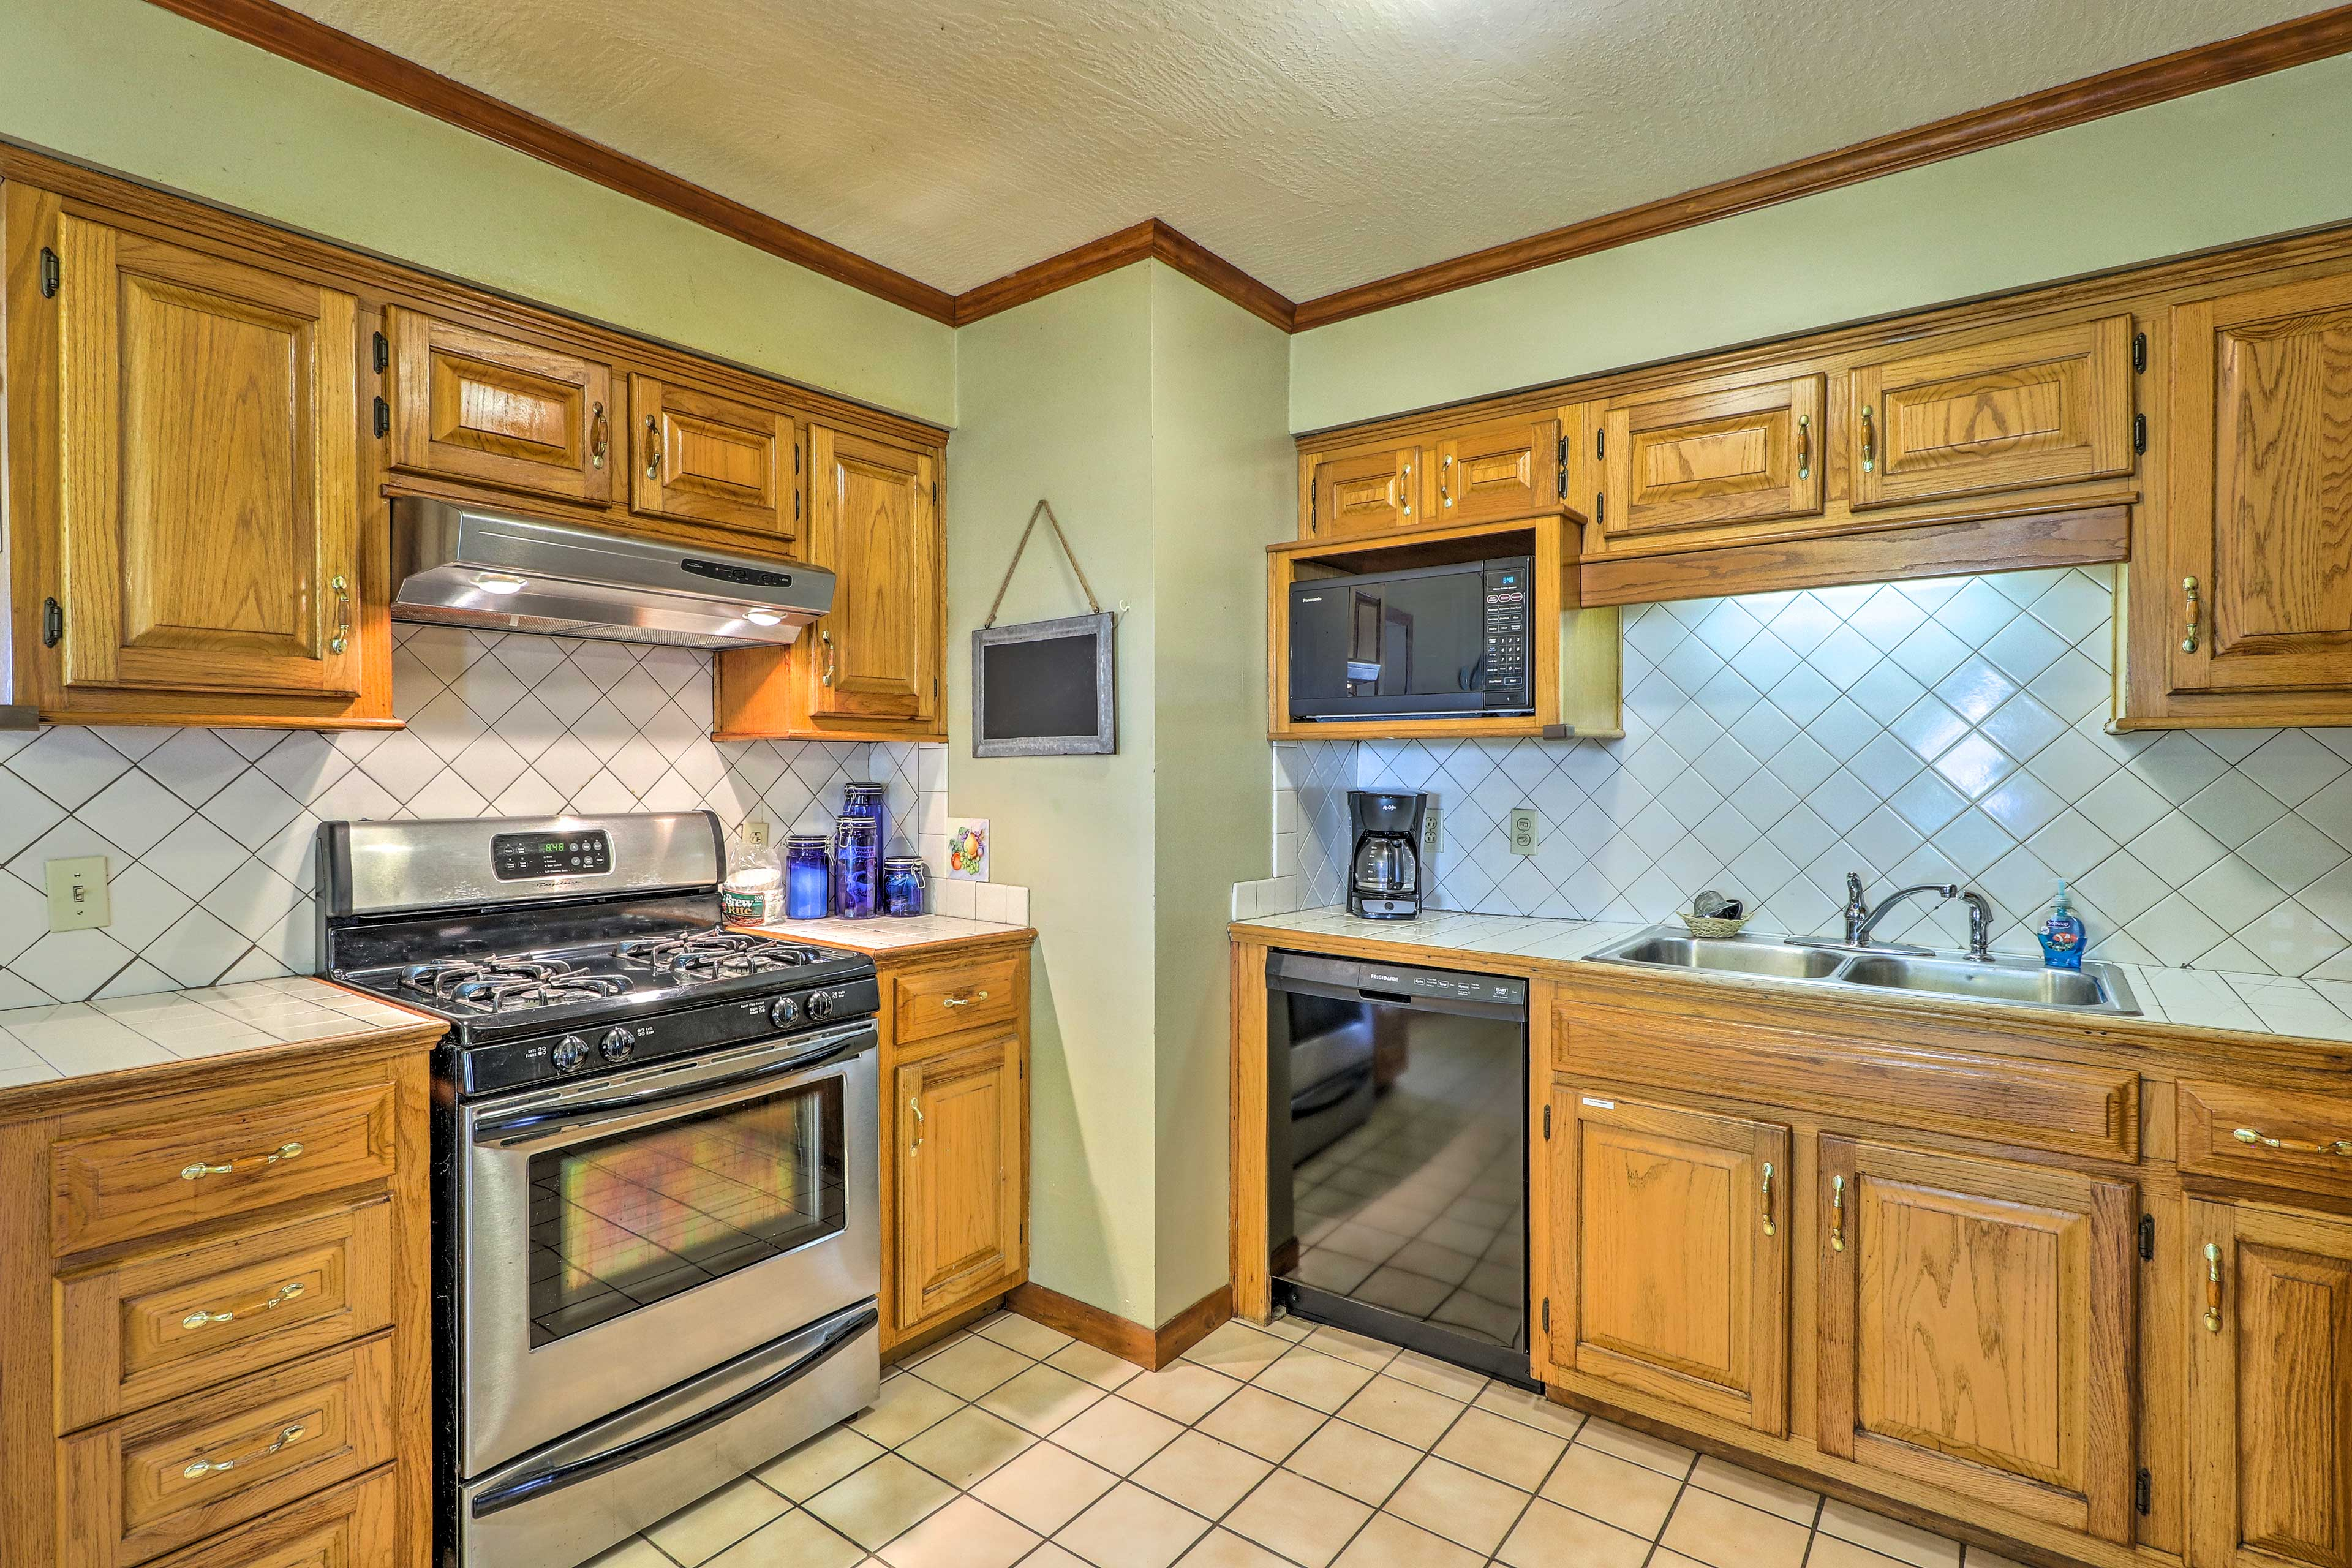 Your cooking experiences will be enjoyable in this fully equipped kitchen.